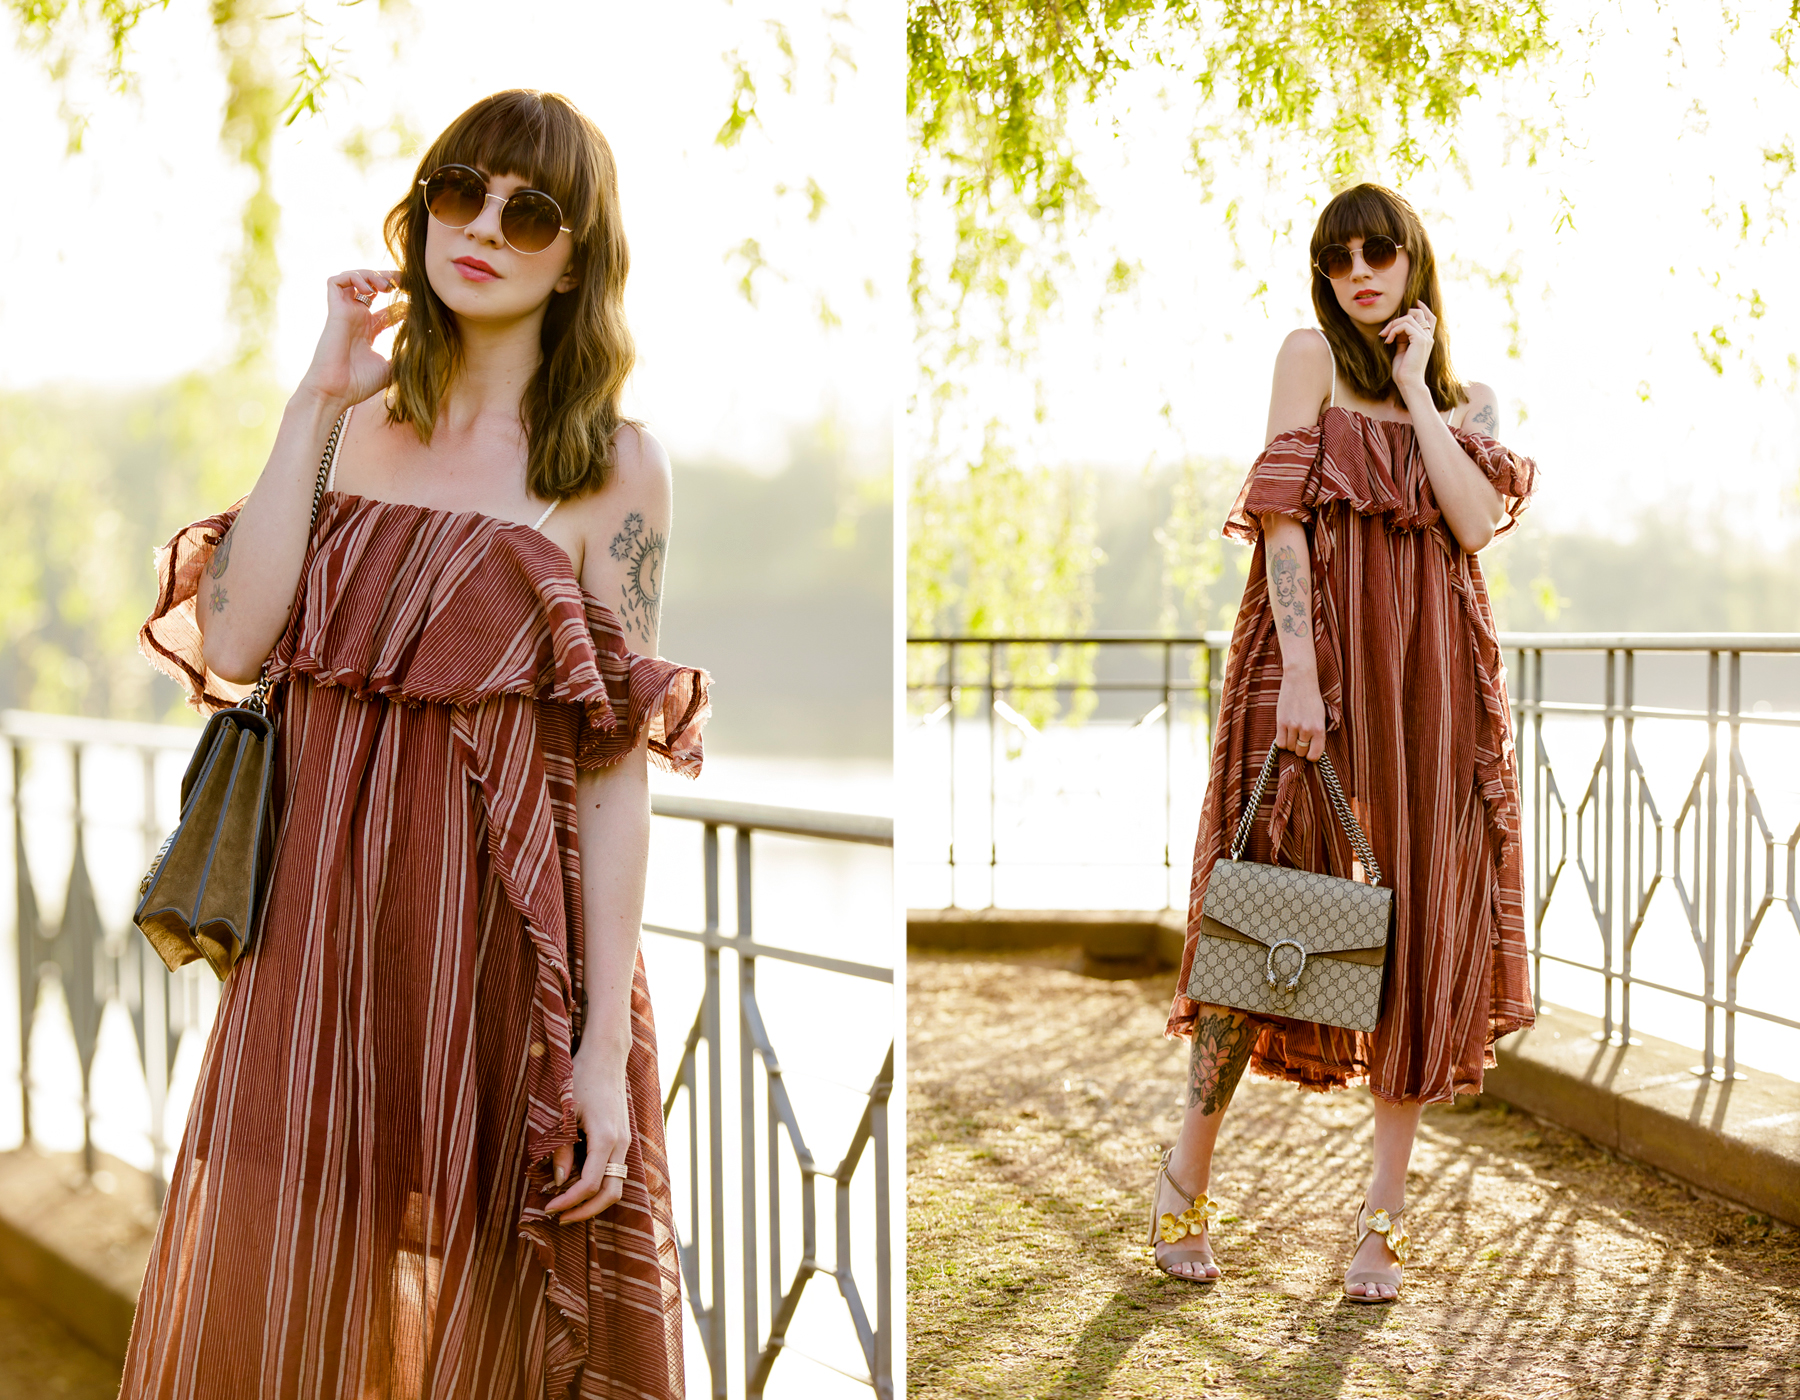 free people off shoulder hippie dress shopbop summer style zara gold flower heels round sunglasses boho vintage chic gucci dionysus fashionblogger cats & dogs modeblog ricarda schernus blogger düsseldorf 1